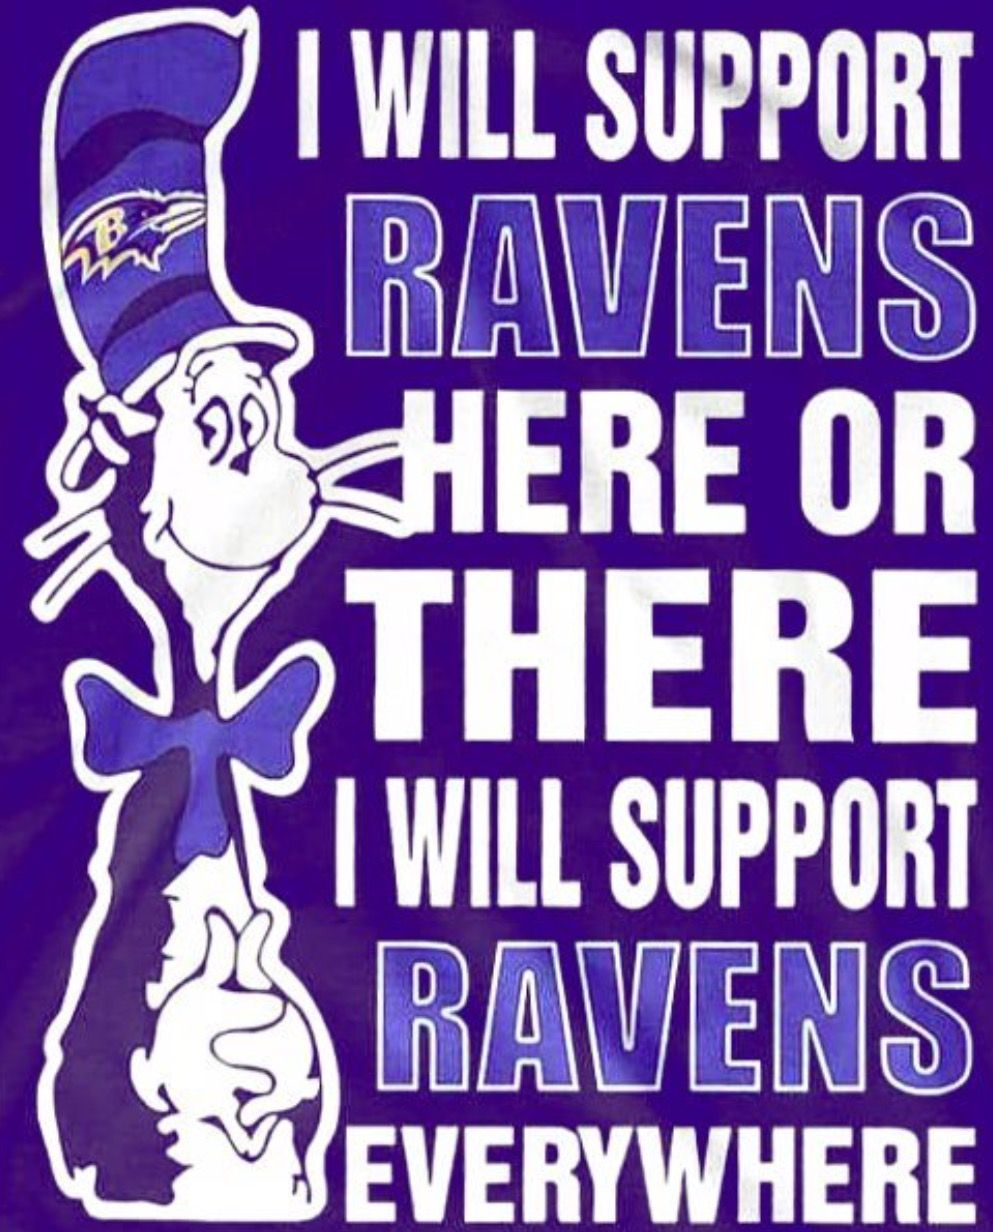 Always Support The Ravens